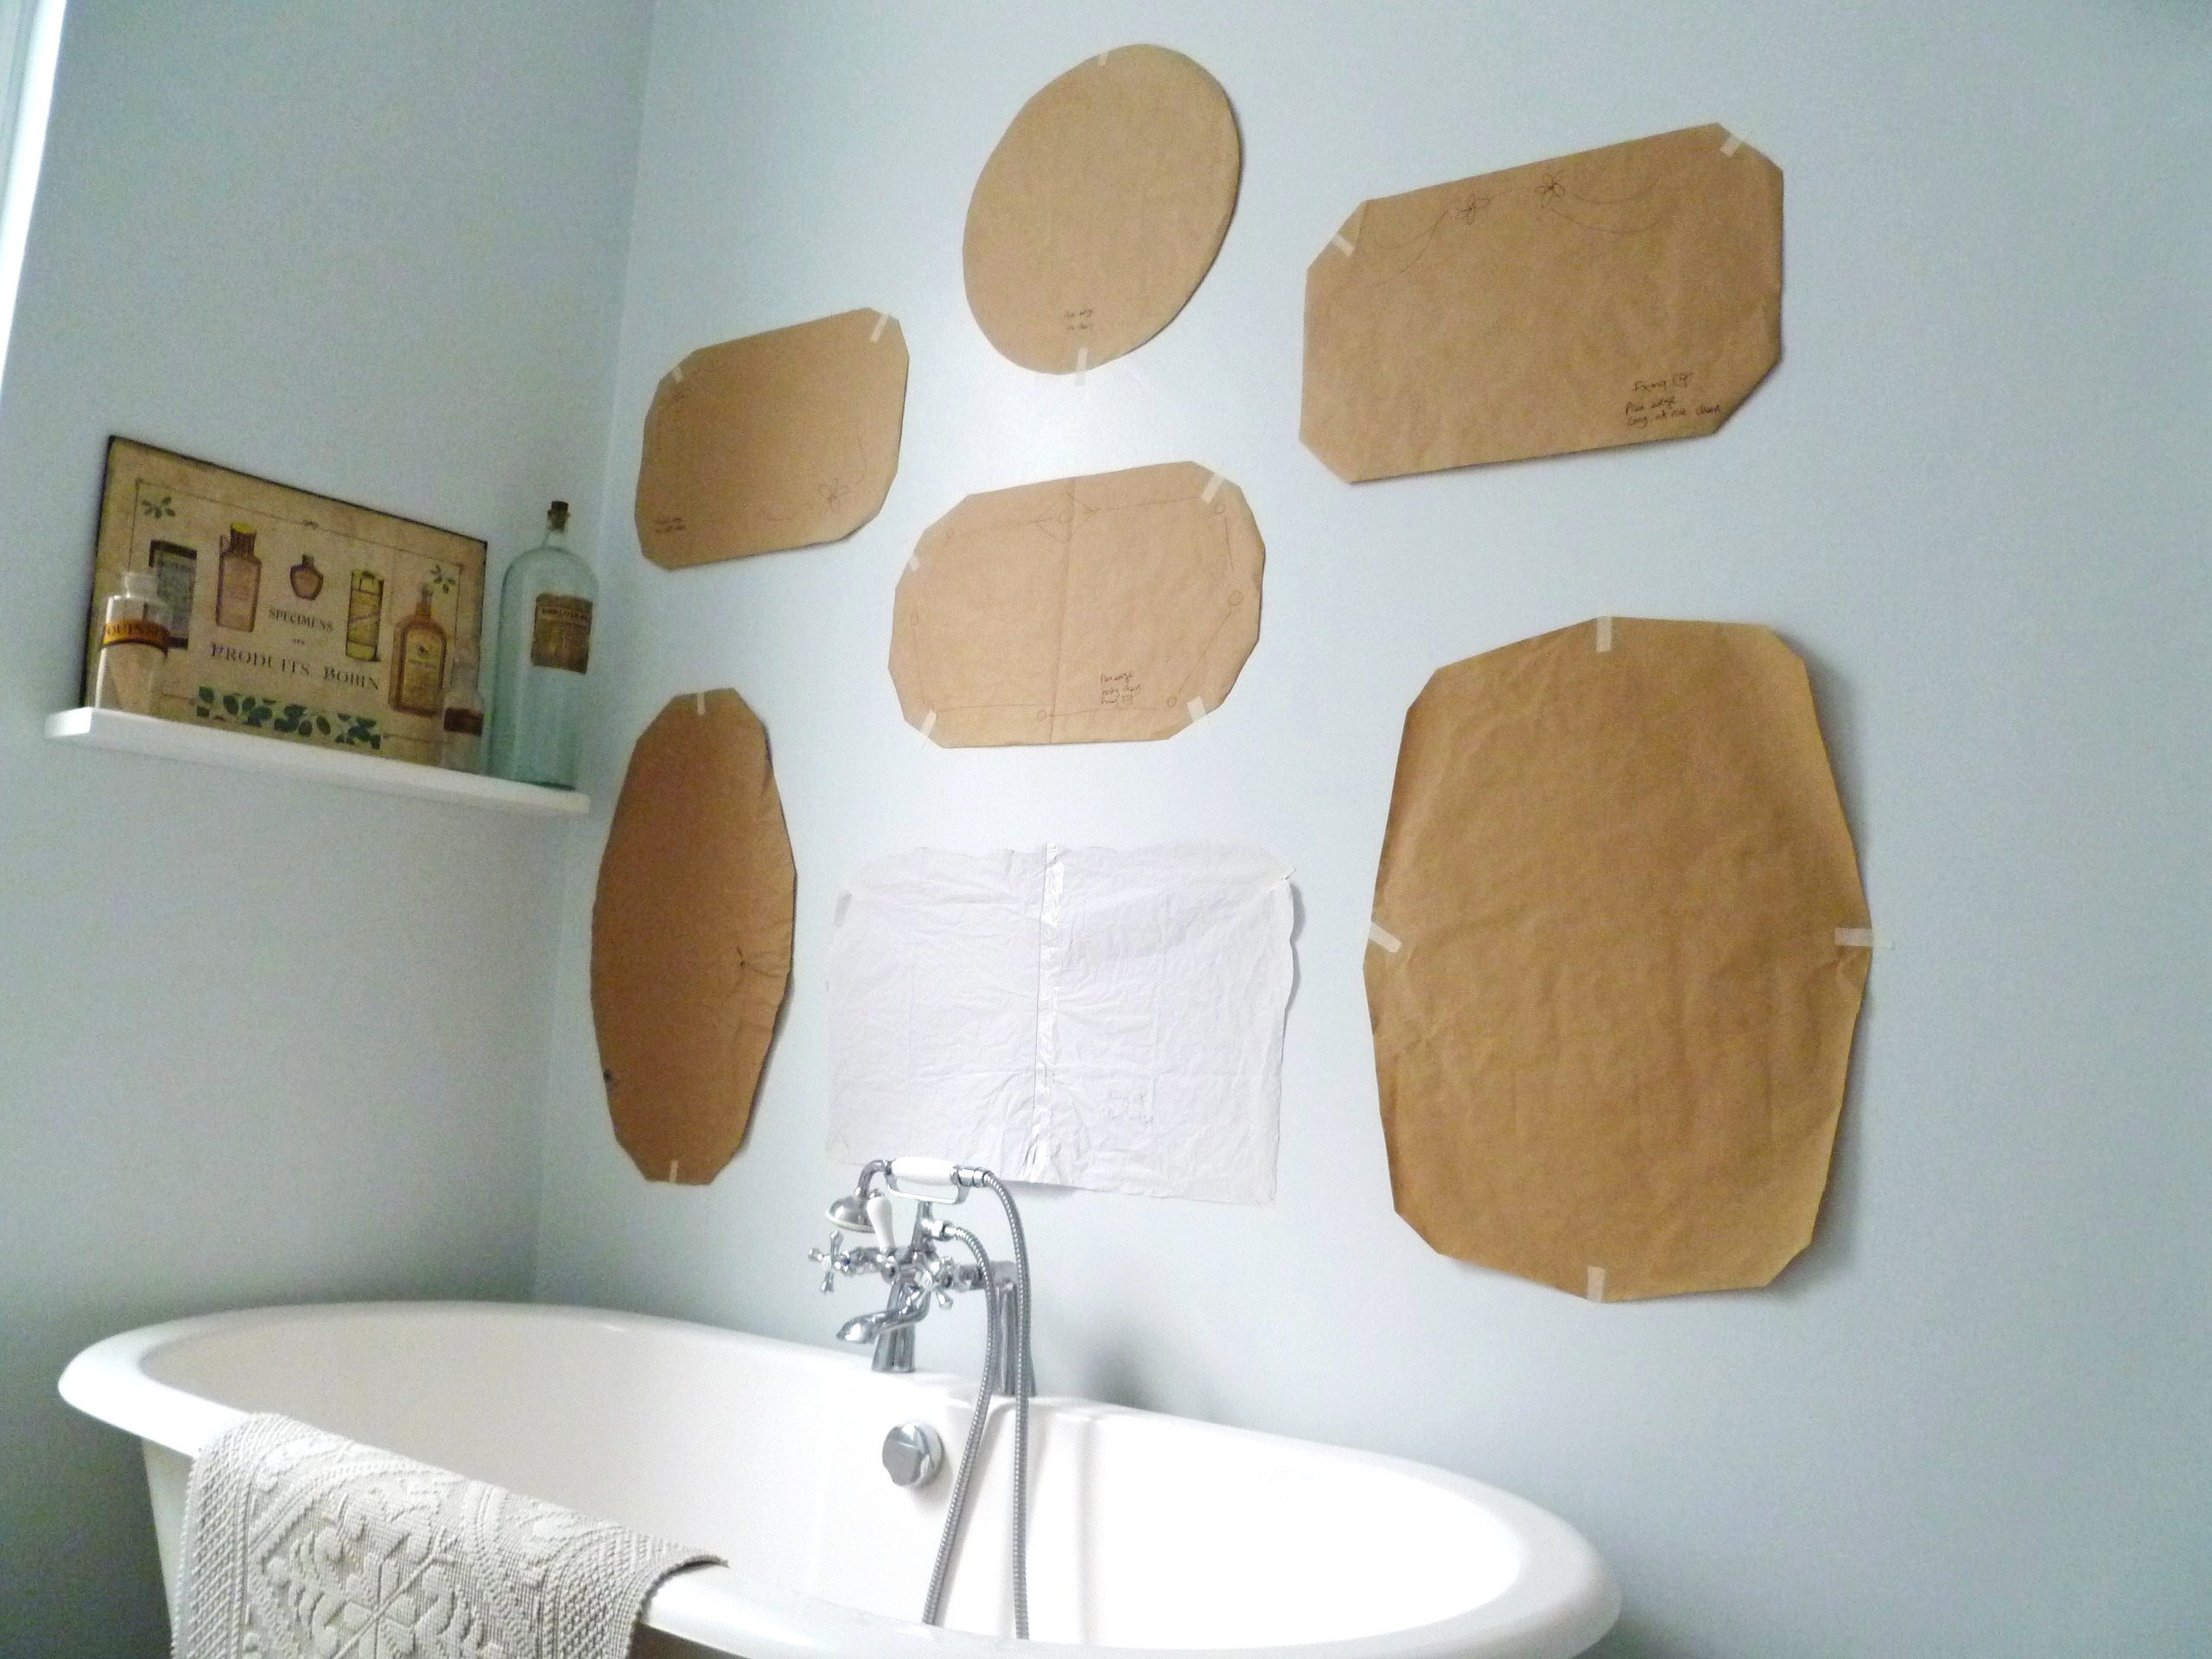 How To Hang A Mirror On The Wall how to hang a display of vintage mirrors | decorator's notebook blog